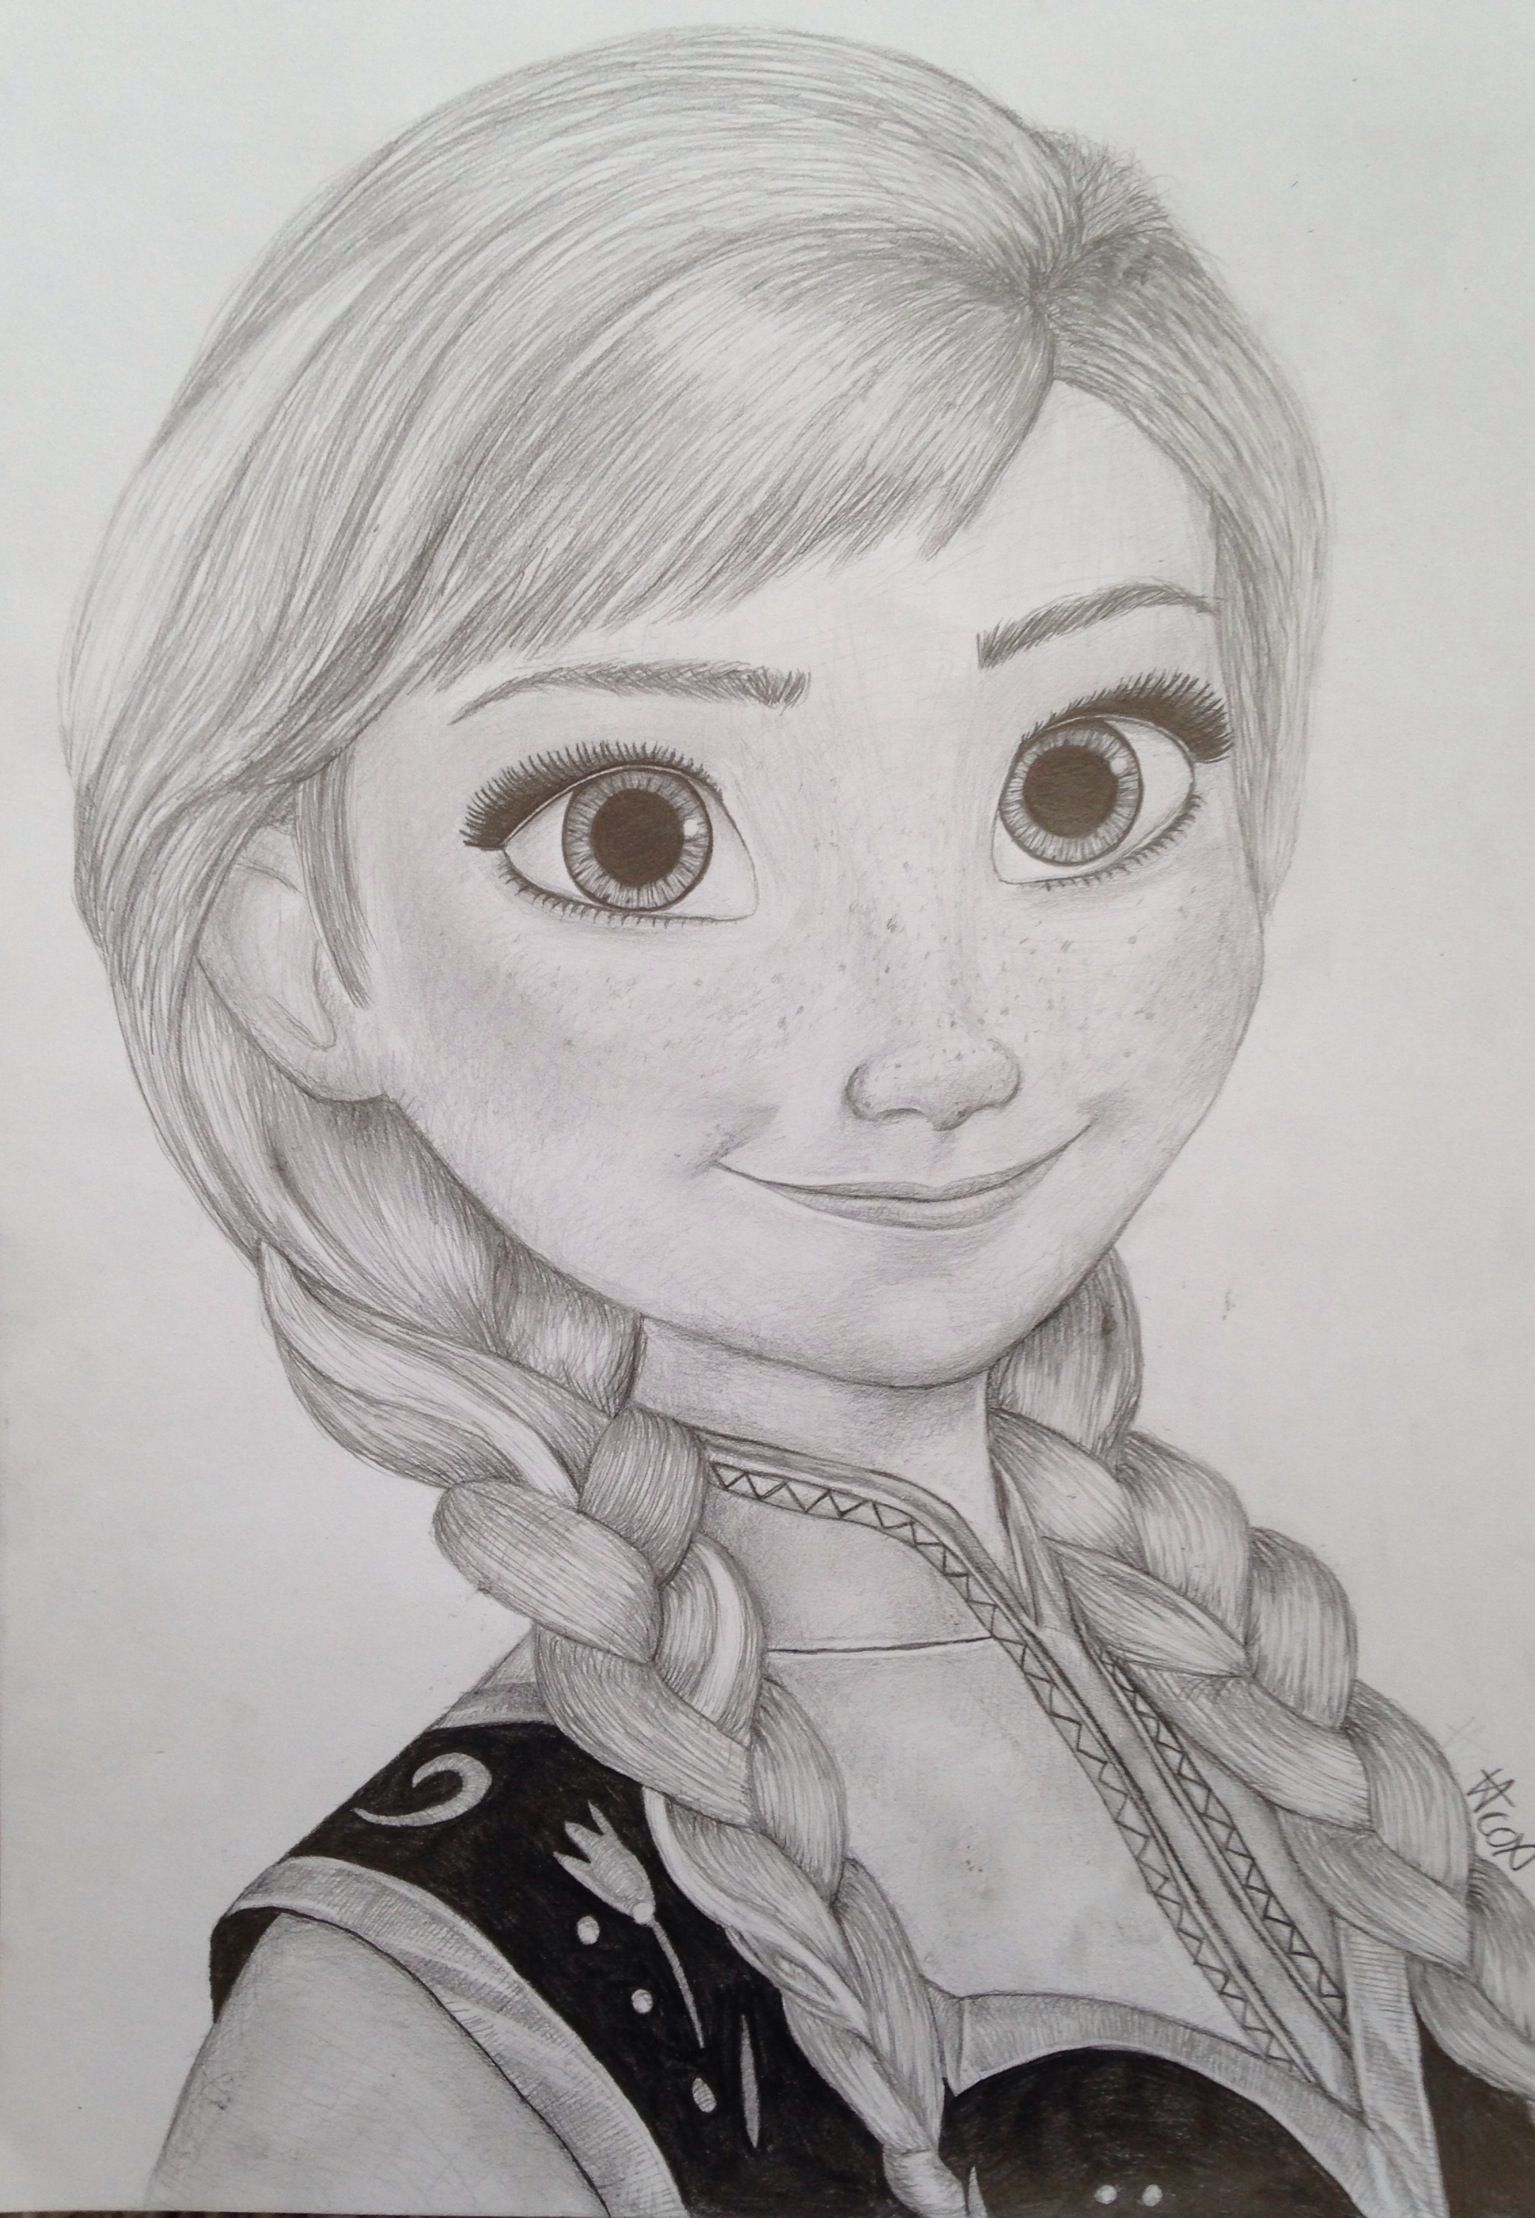 My Princess Anna Drawing From Frozen Disney Drawings Sketches Disney Princess Drawings Disney Art Drawings